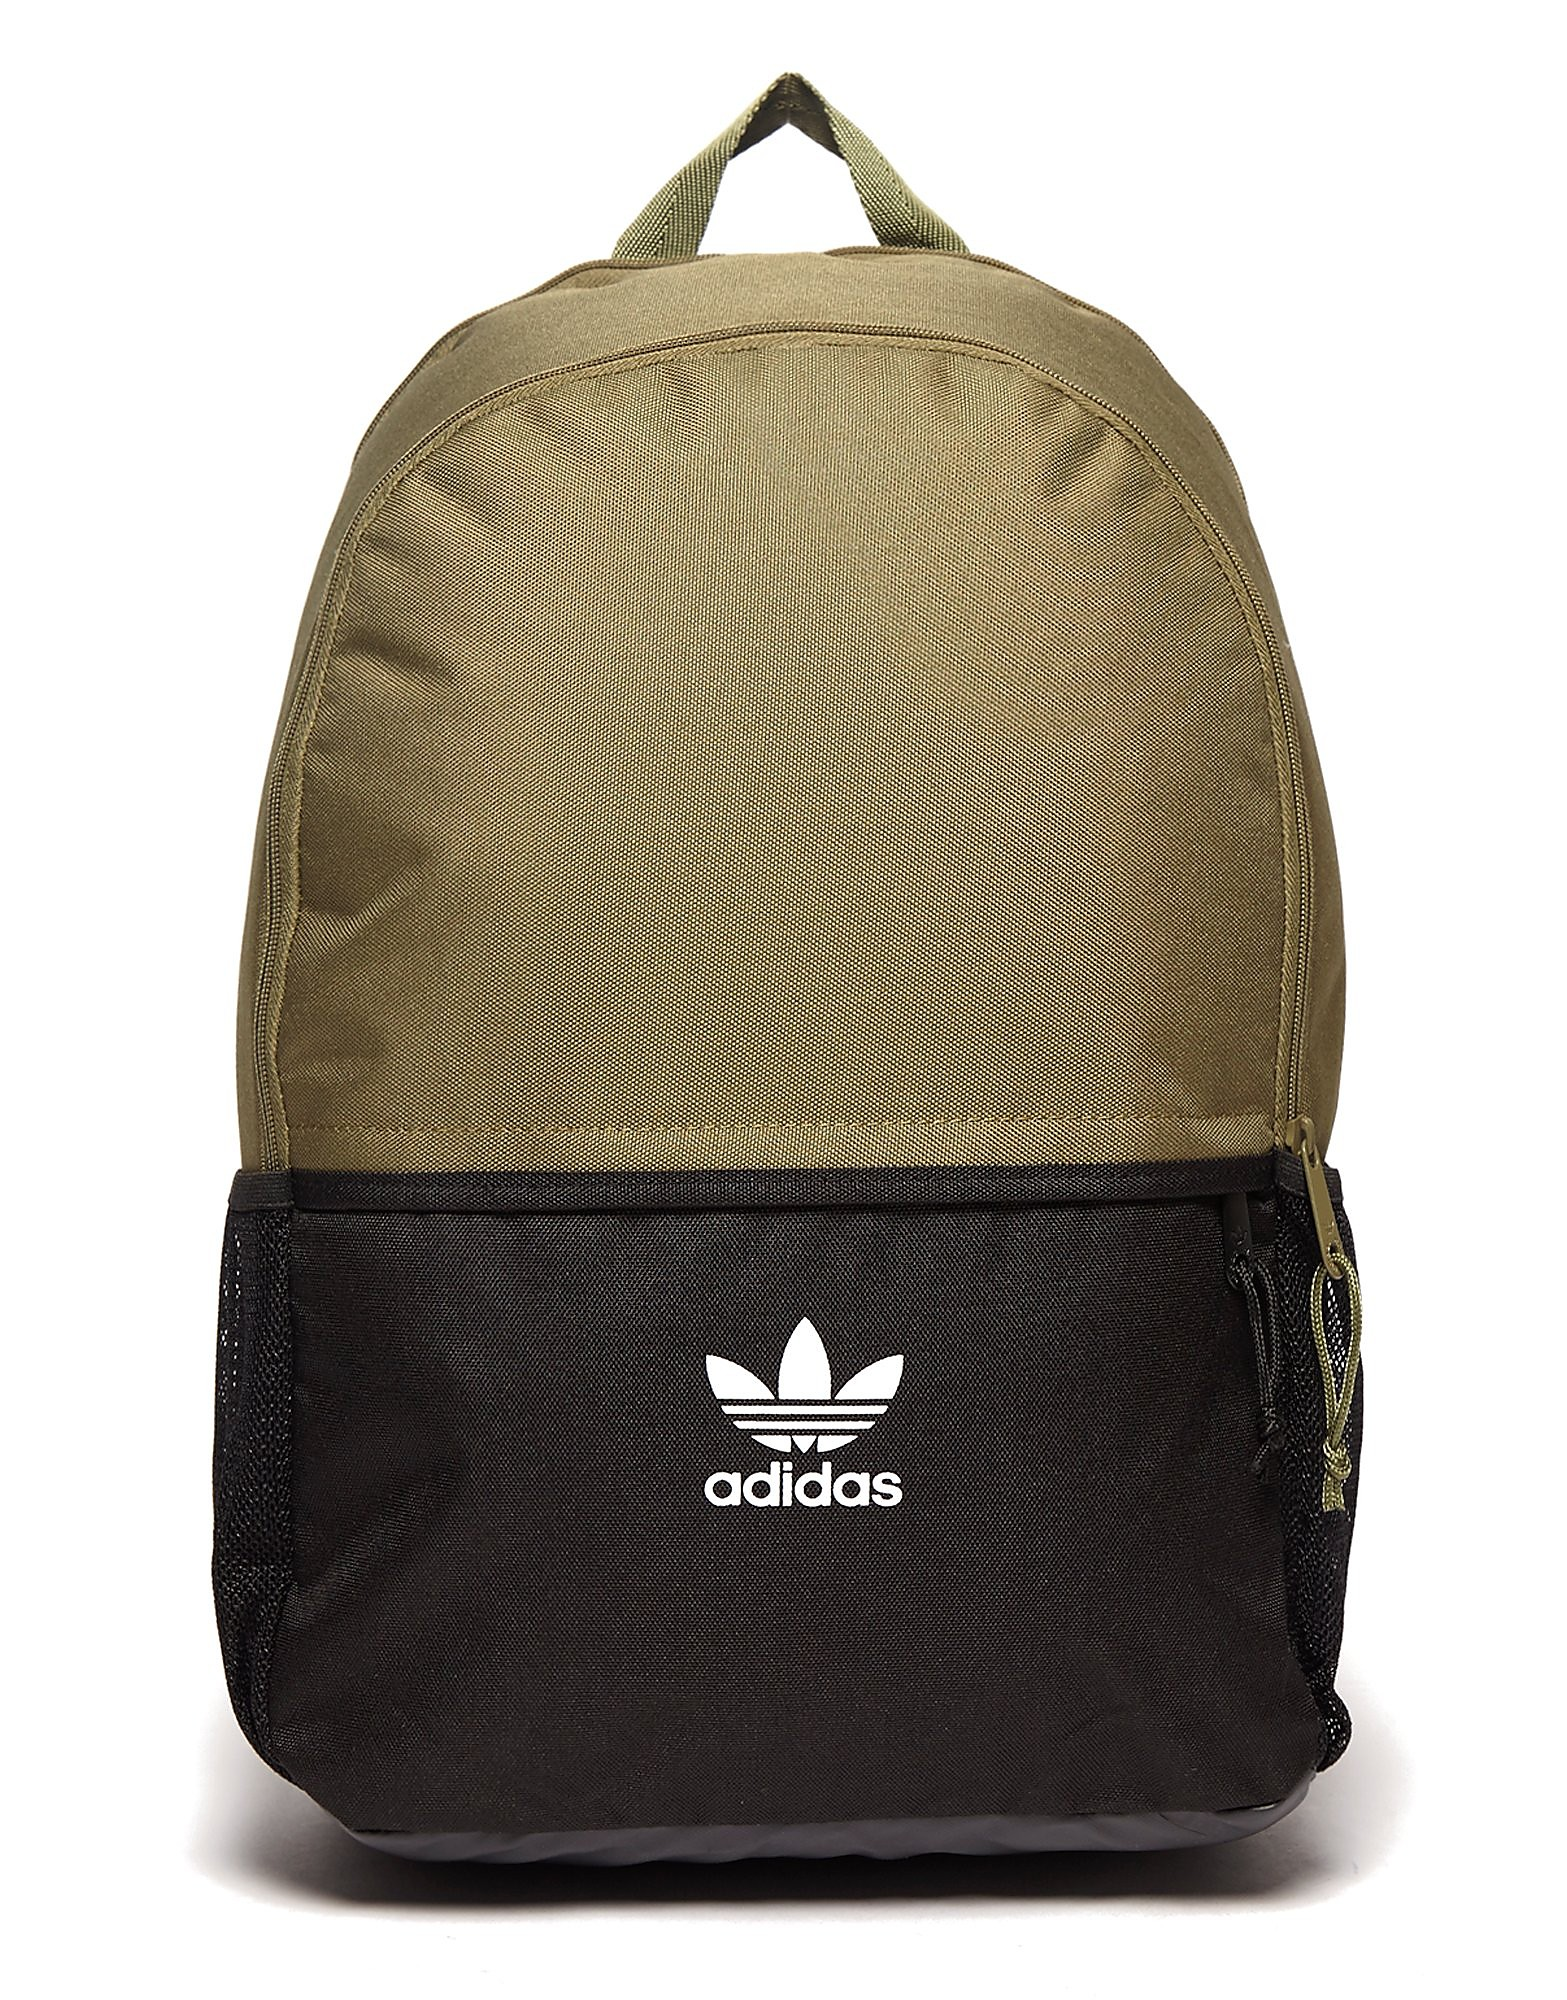 adidas Originals Split Back Pack